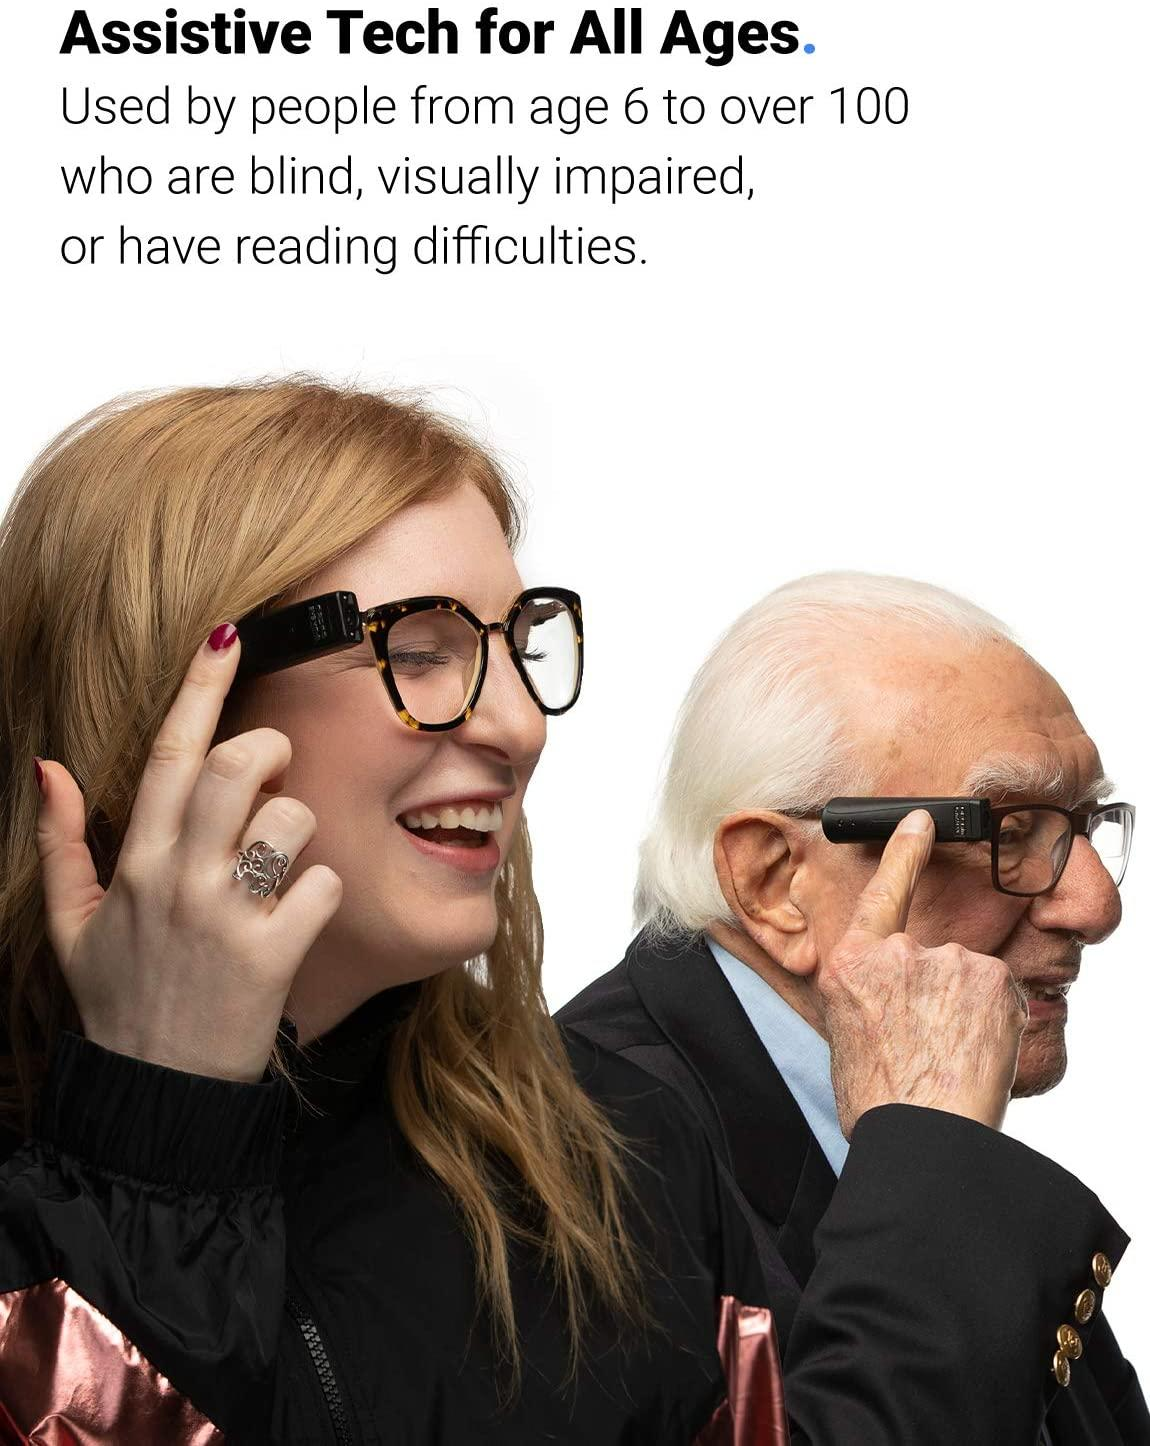 Young lady and older man both using the OrCam MyEye